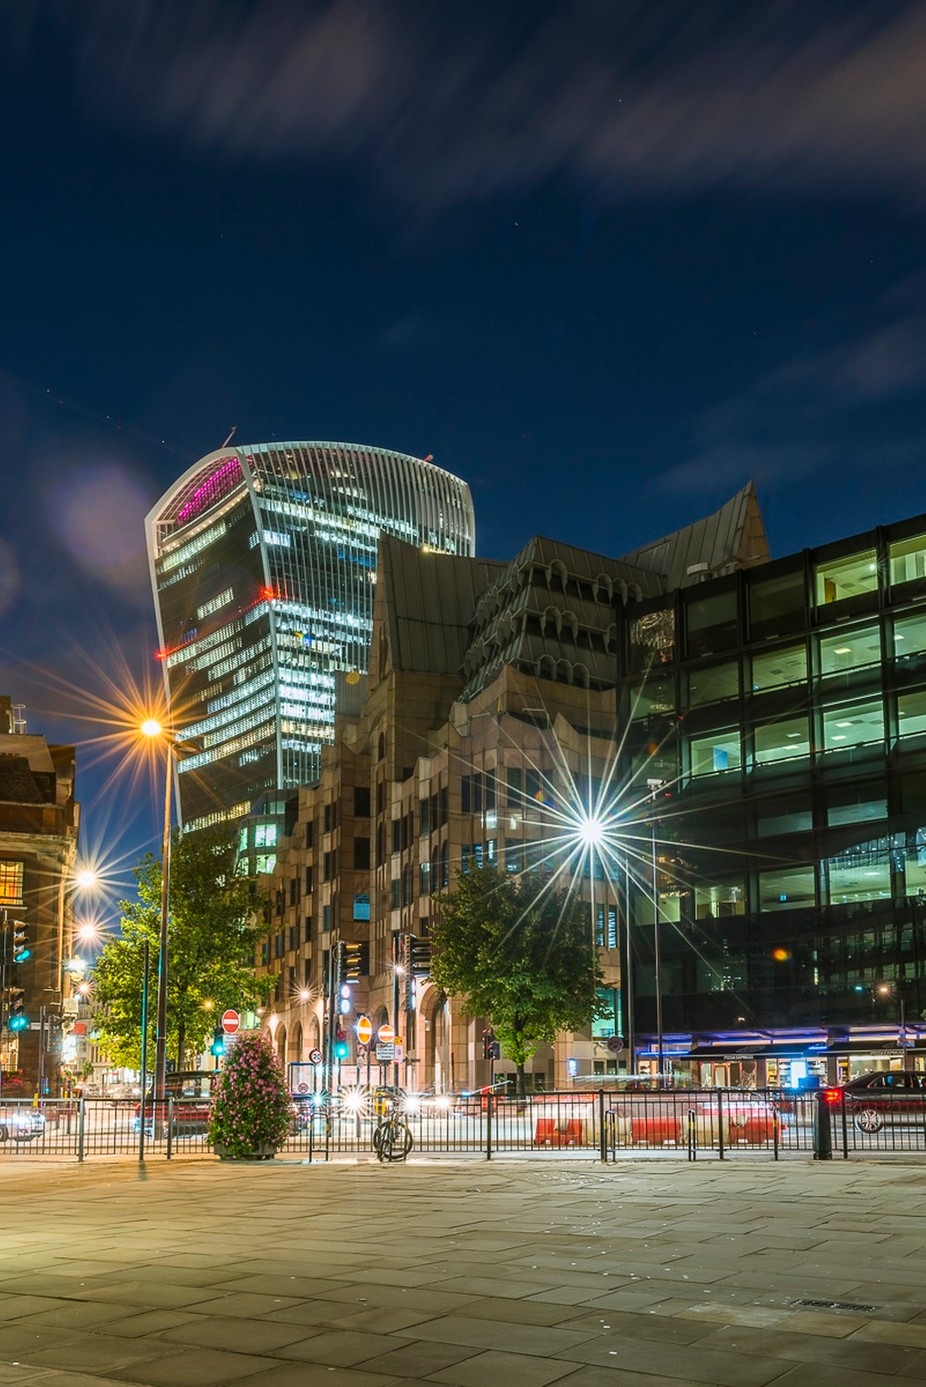 London Walkie Talkie by richiehall - London Photo Contest